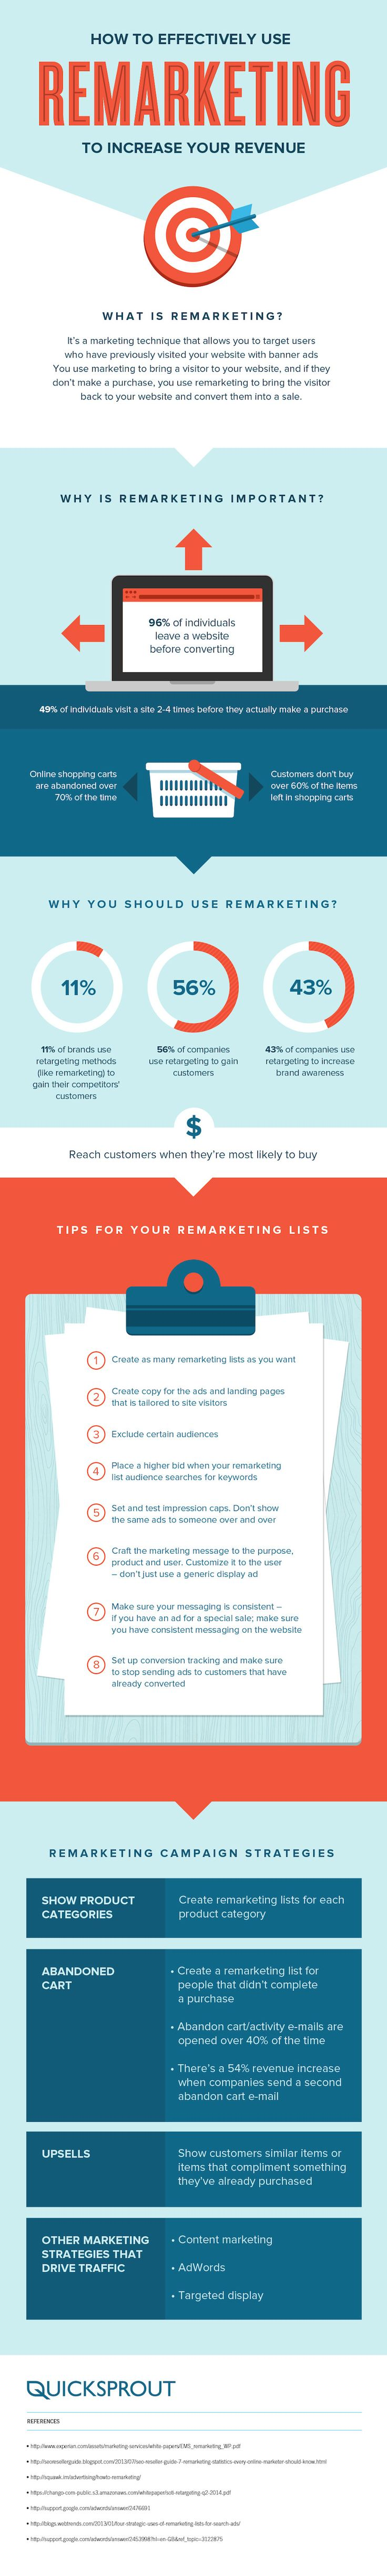 Awesome re marketing infographic compiled by Quick Sprout